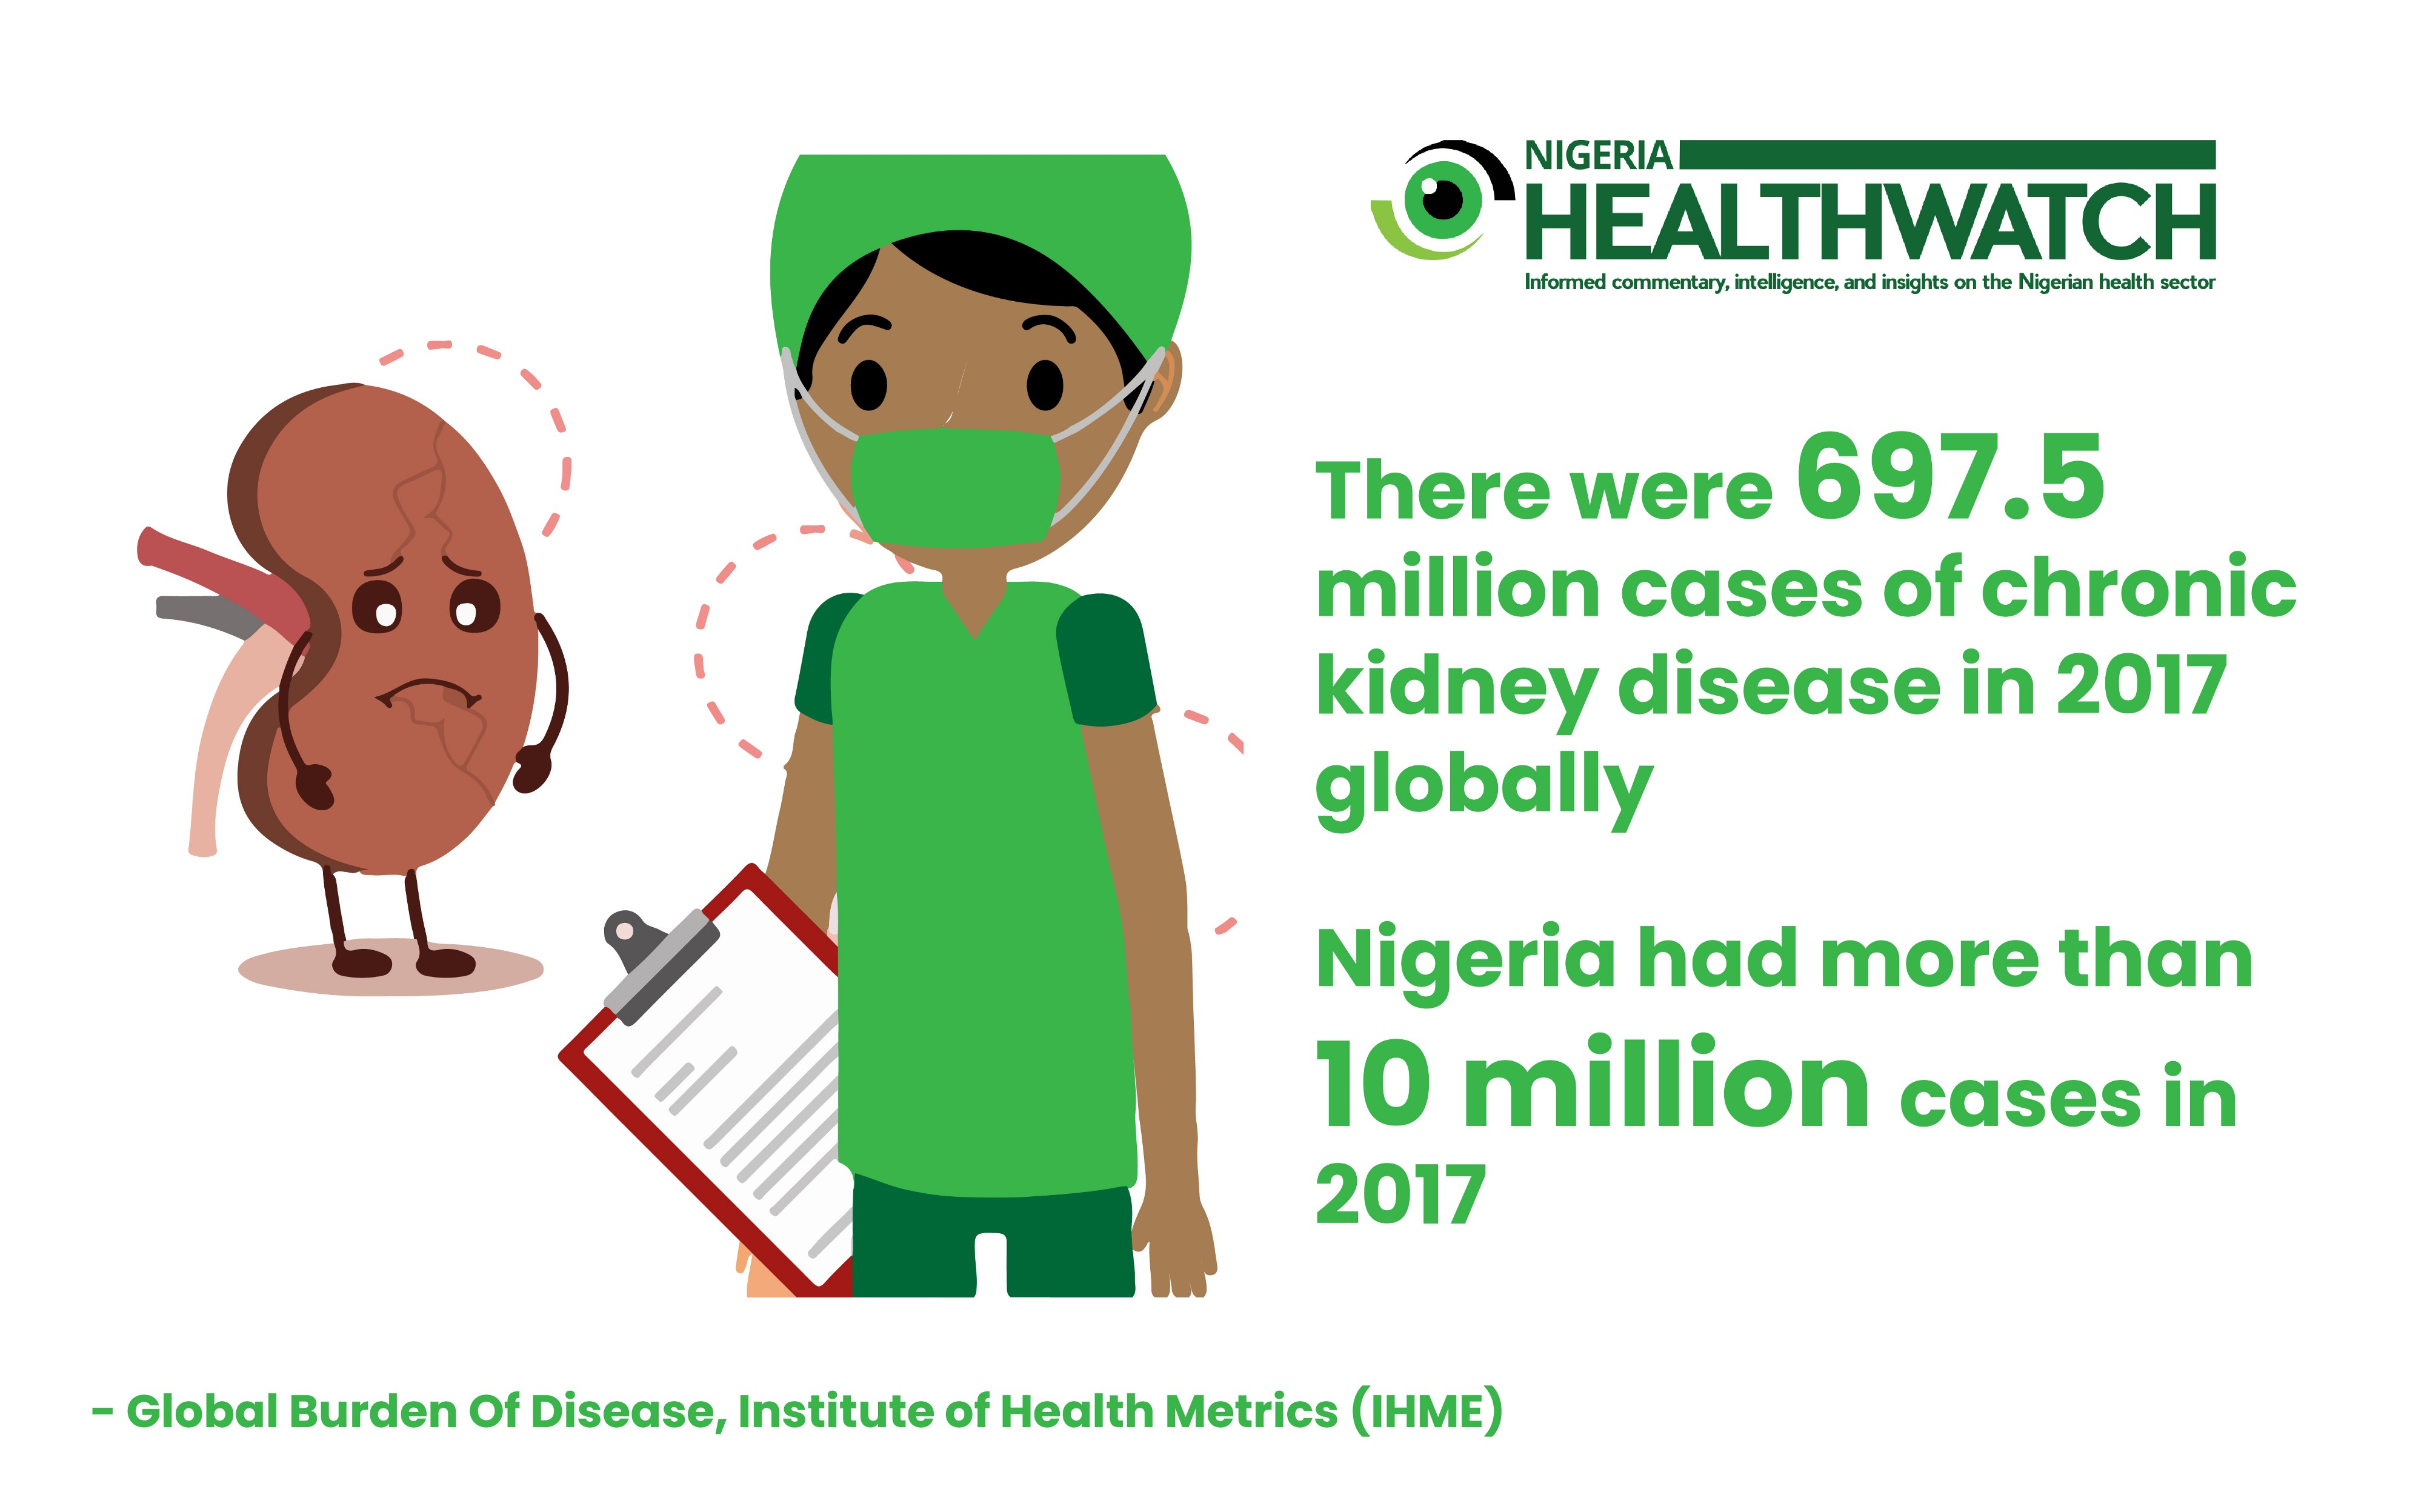 View Causes Of Kidney Failure In Nigeria  To Get Inspired